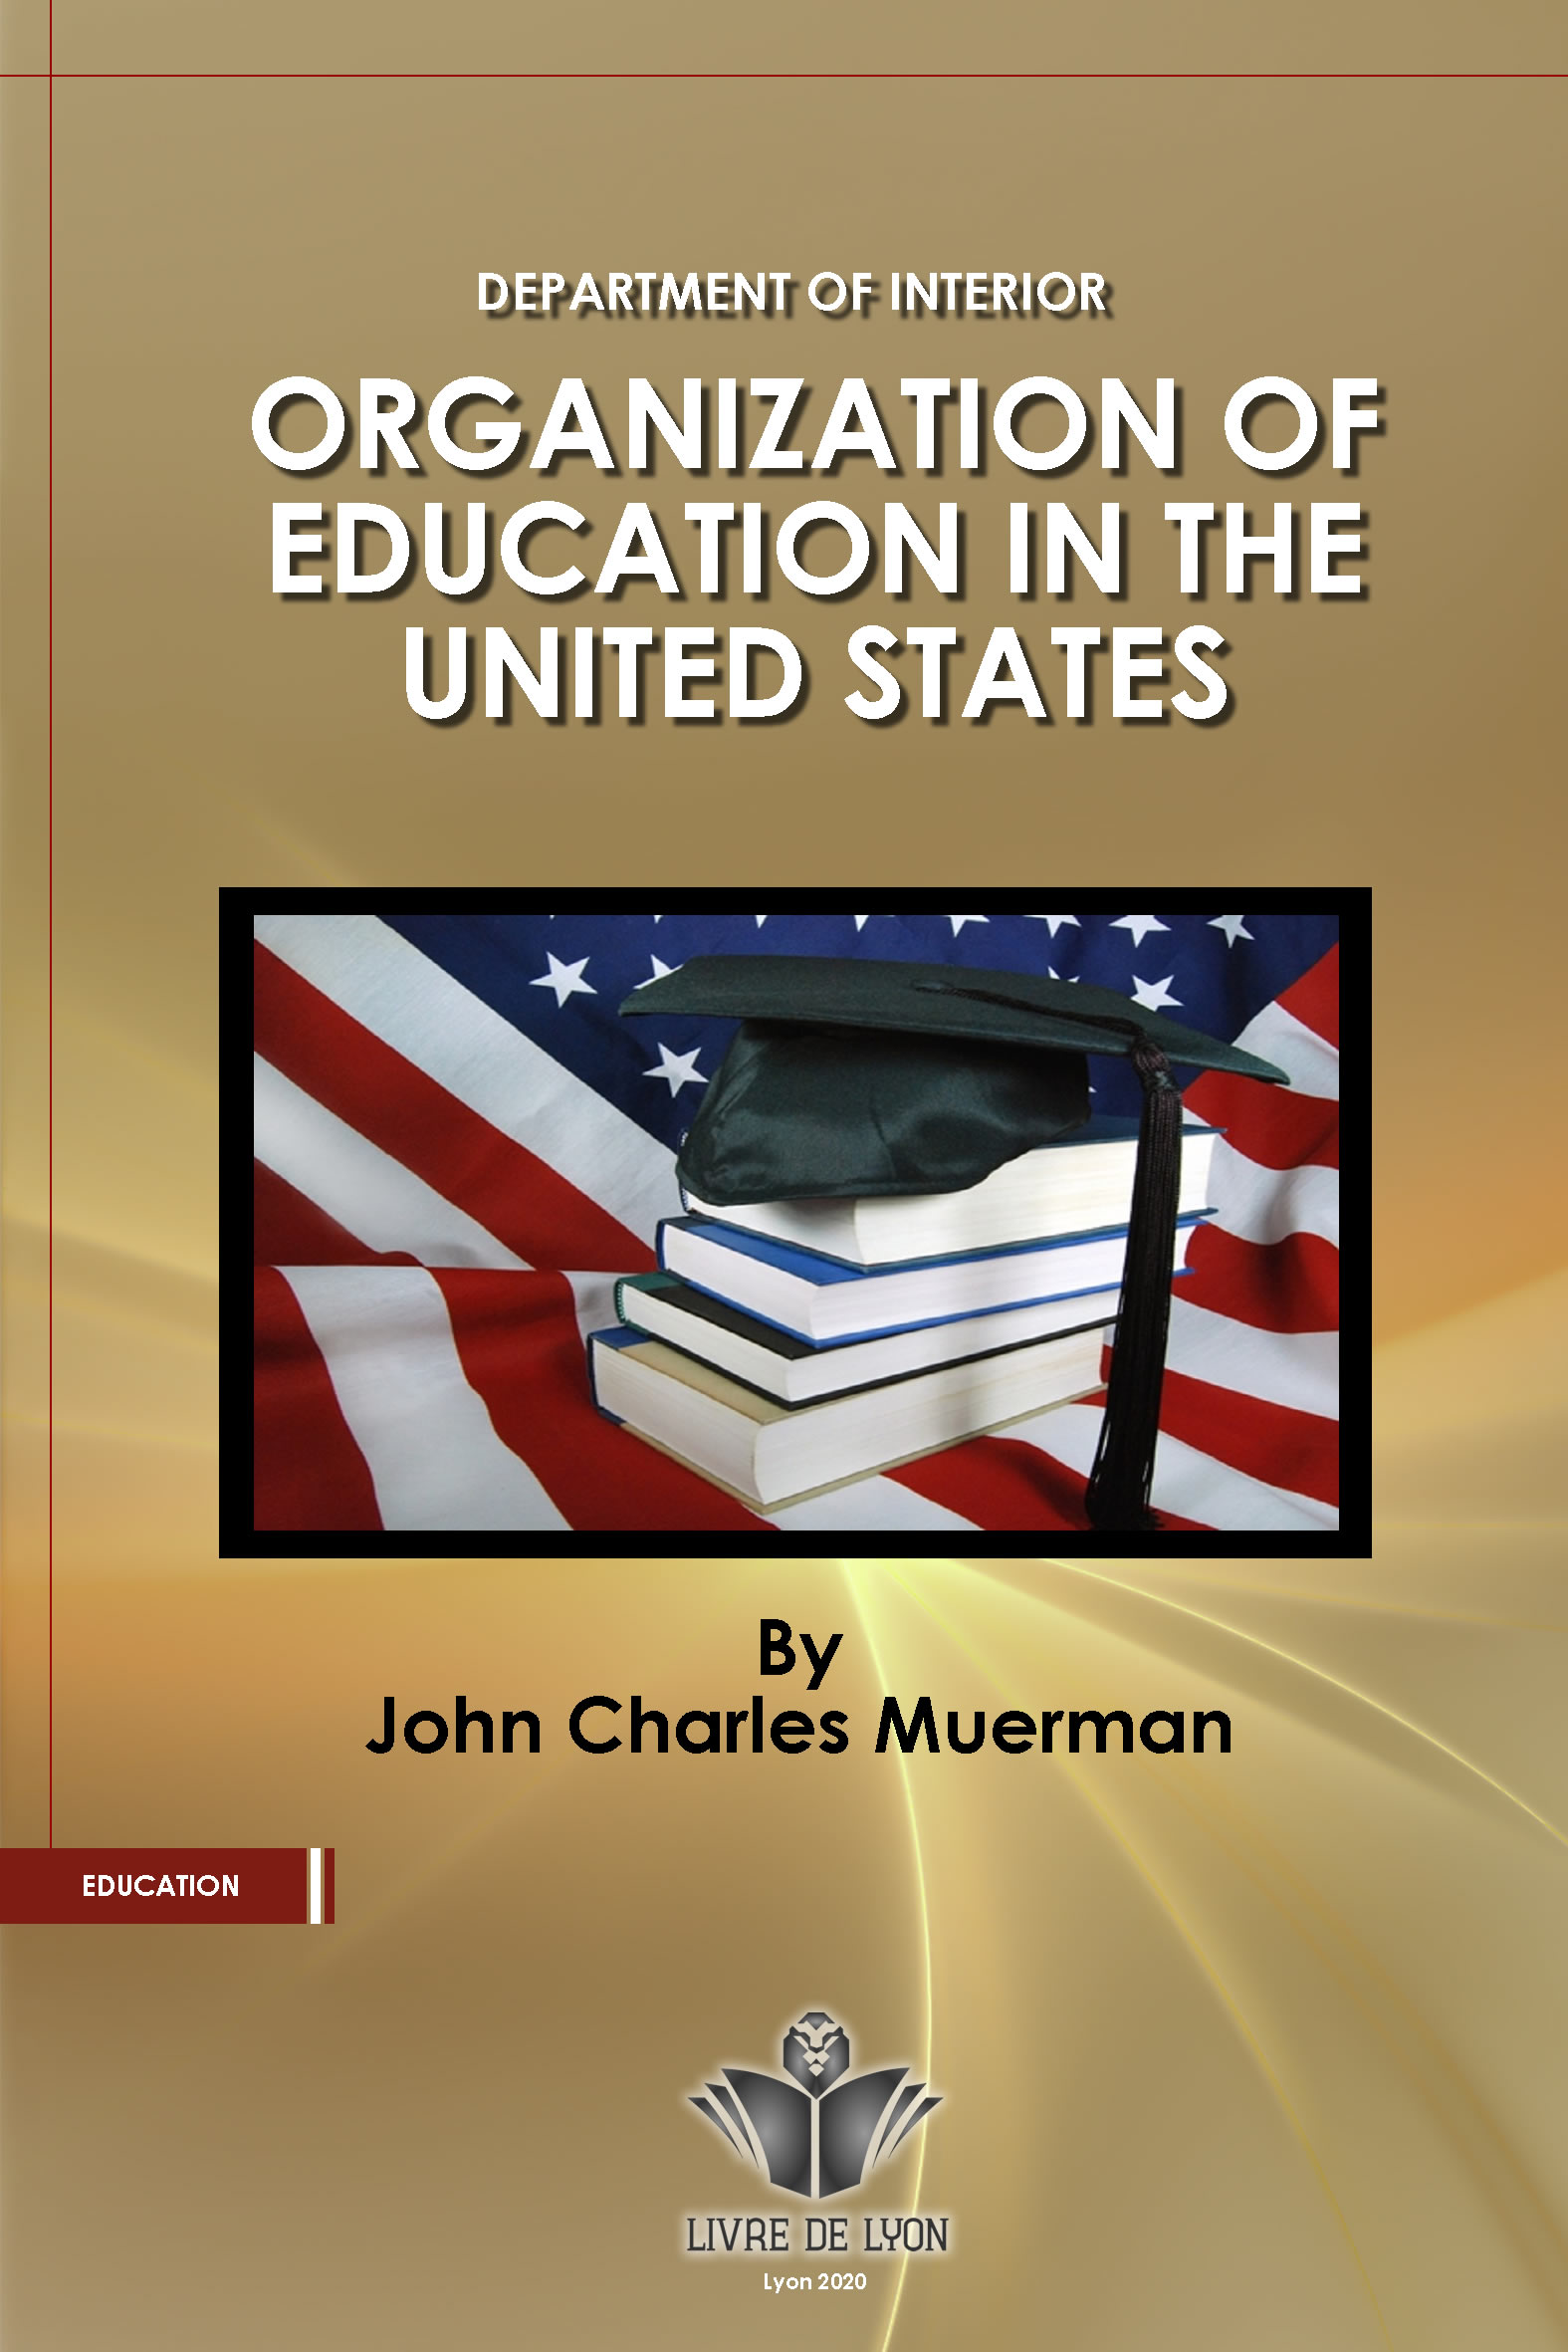 Organization of Education in the United States